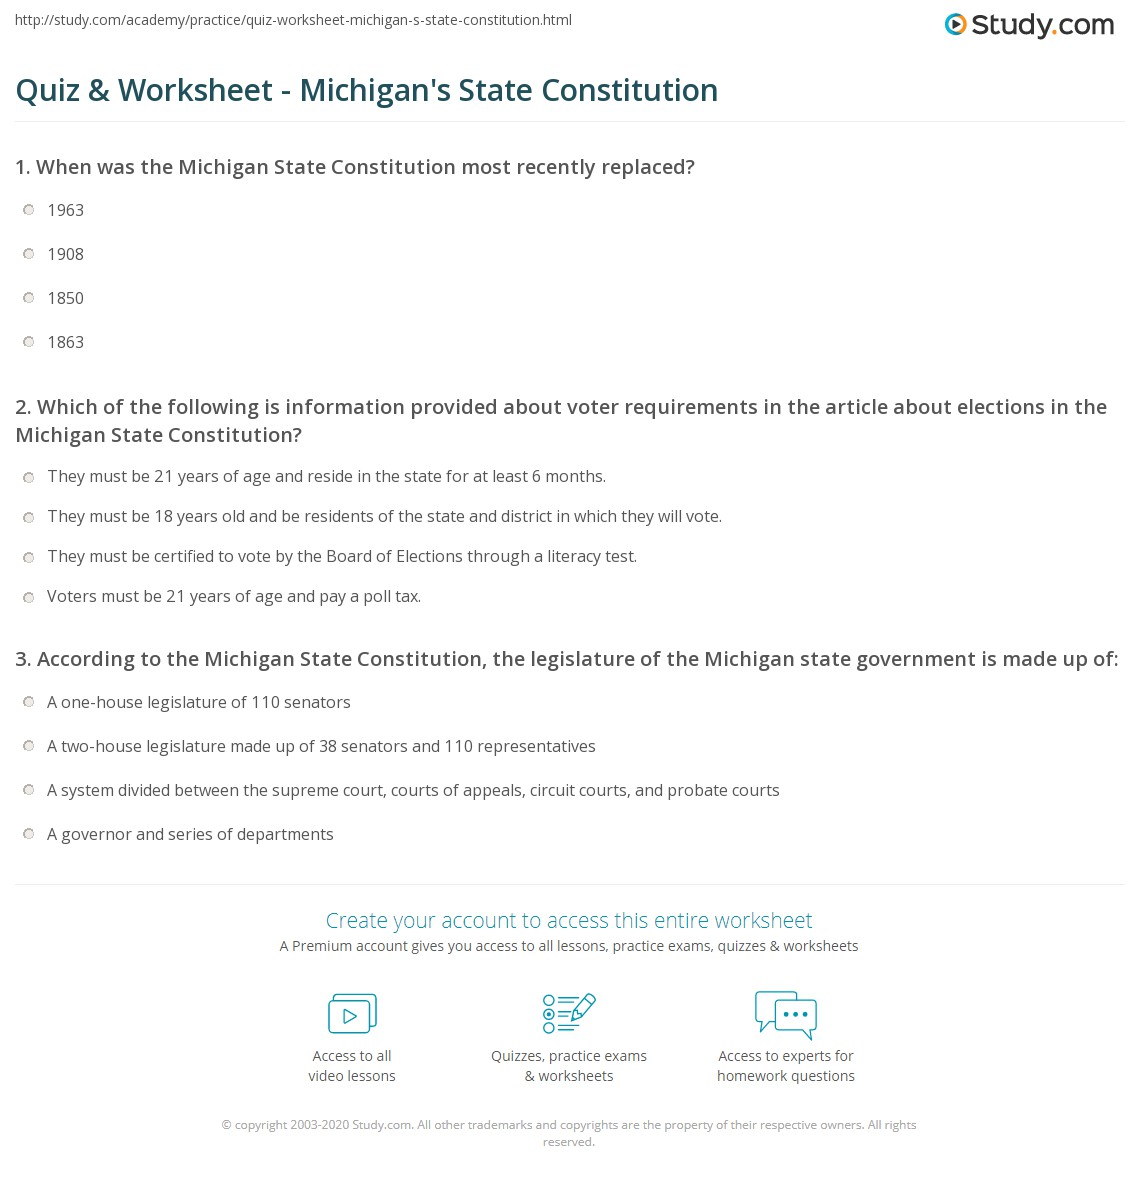 Quiz & Worksheet - Michigan's State Constitution | Study.com